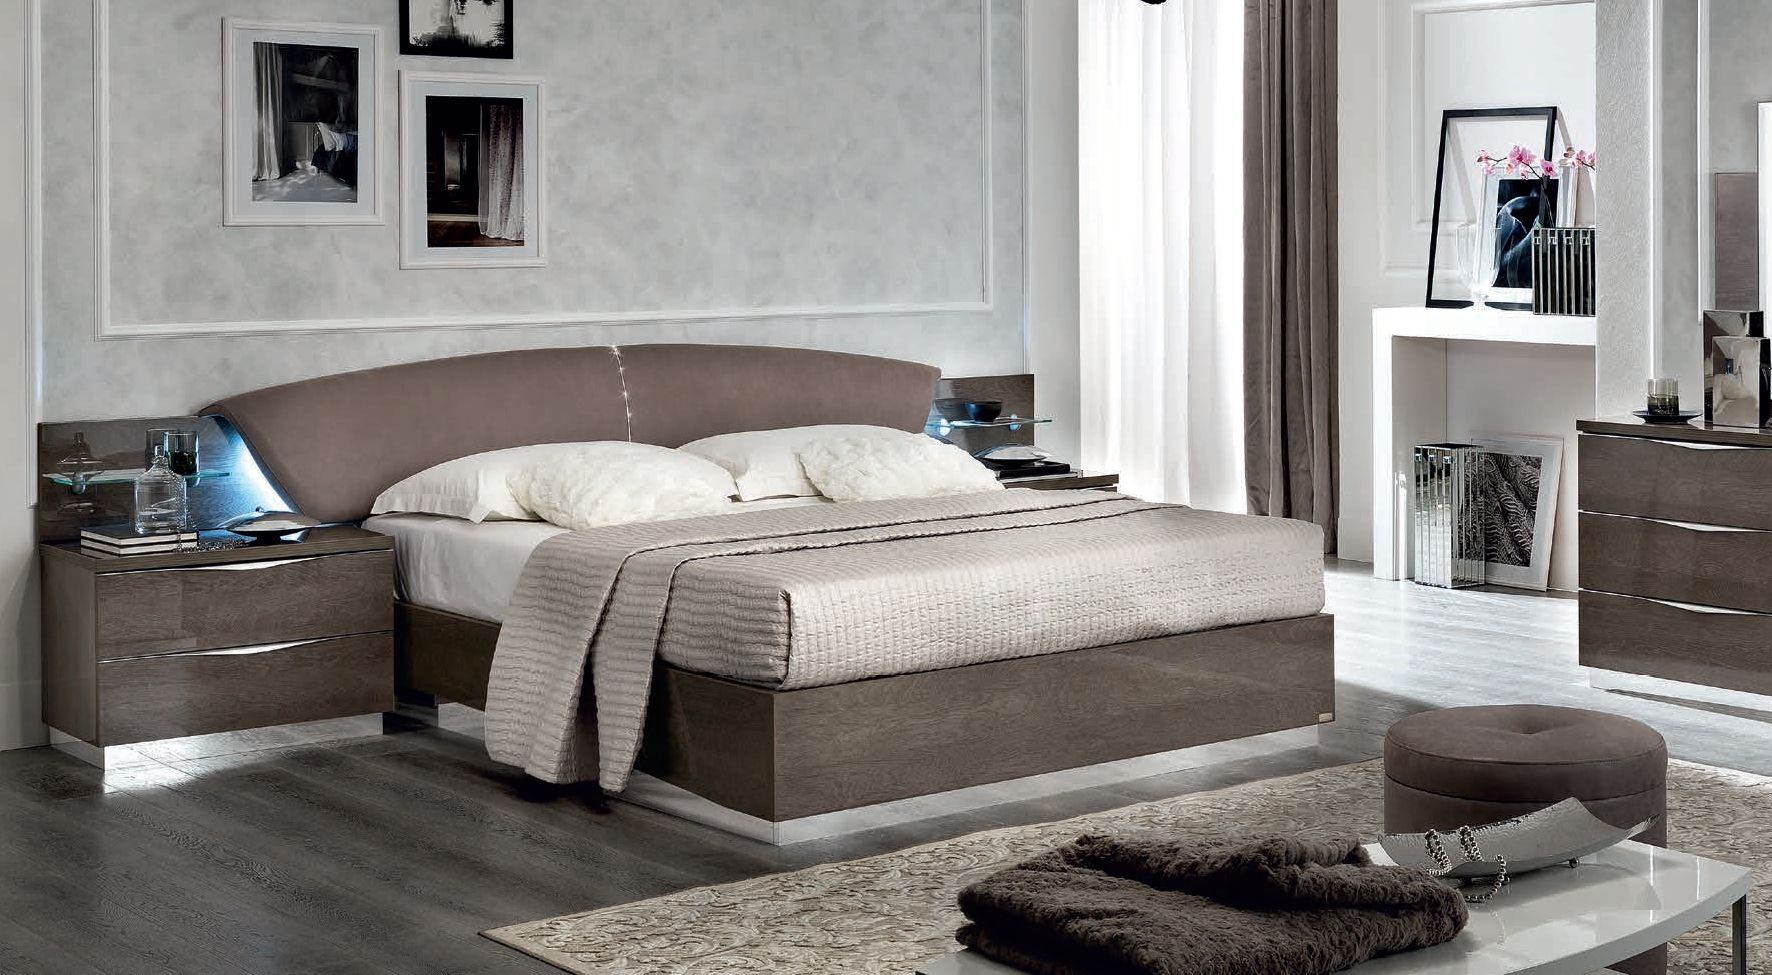 Buy Camel Letto Platinum Night Italian Bed Online - CFS UK